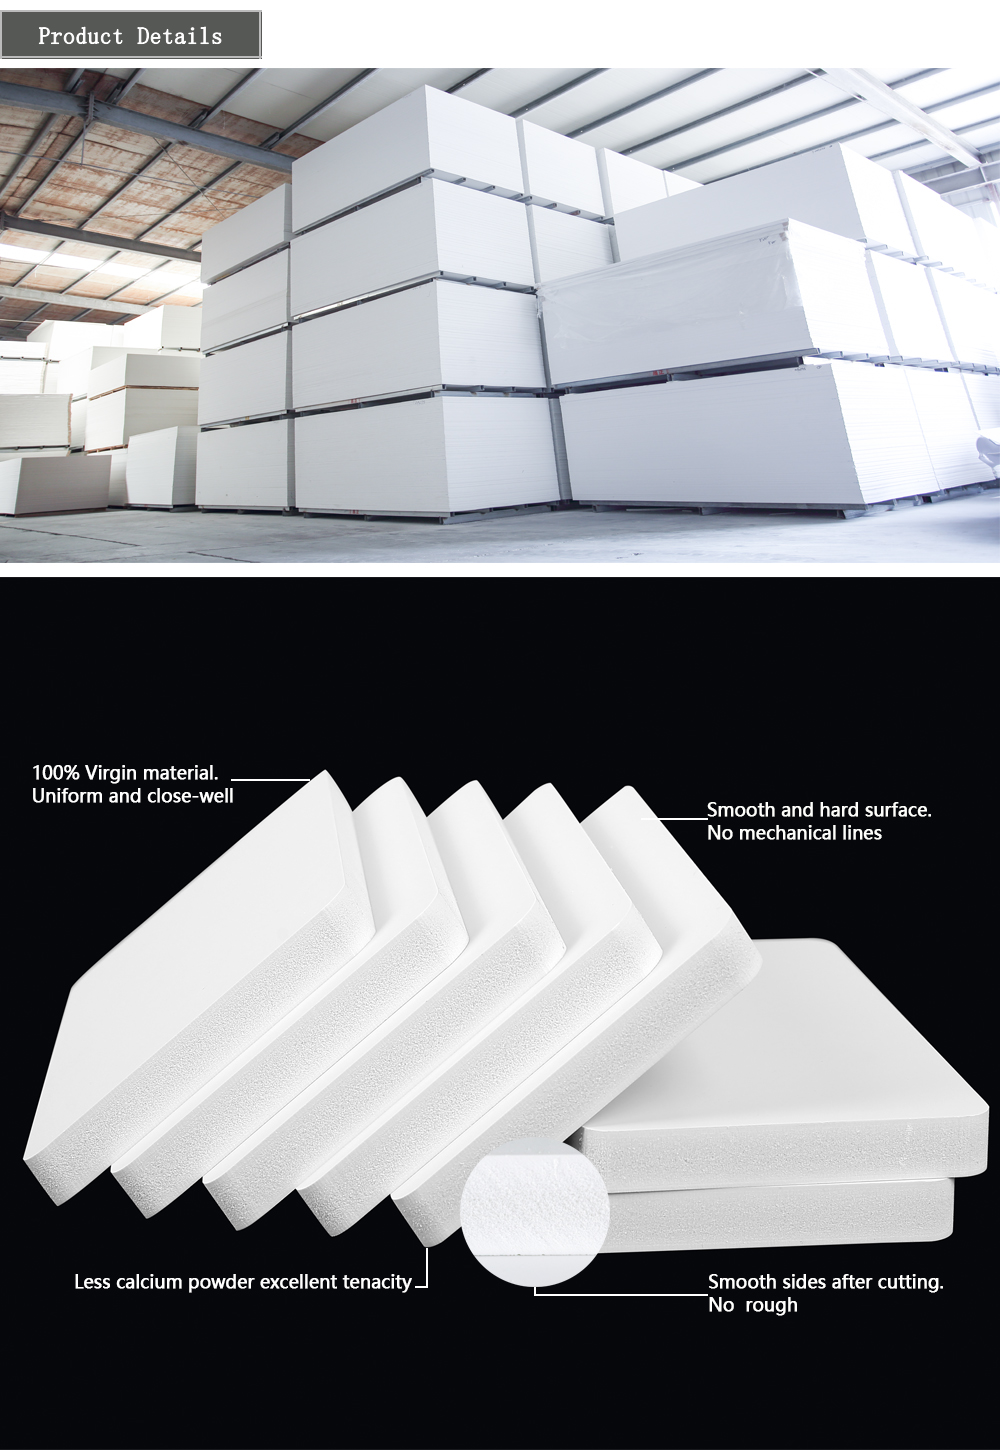 SMARTBULL sintra white pvc foam board for construction, advertising, furniture industry